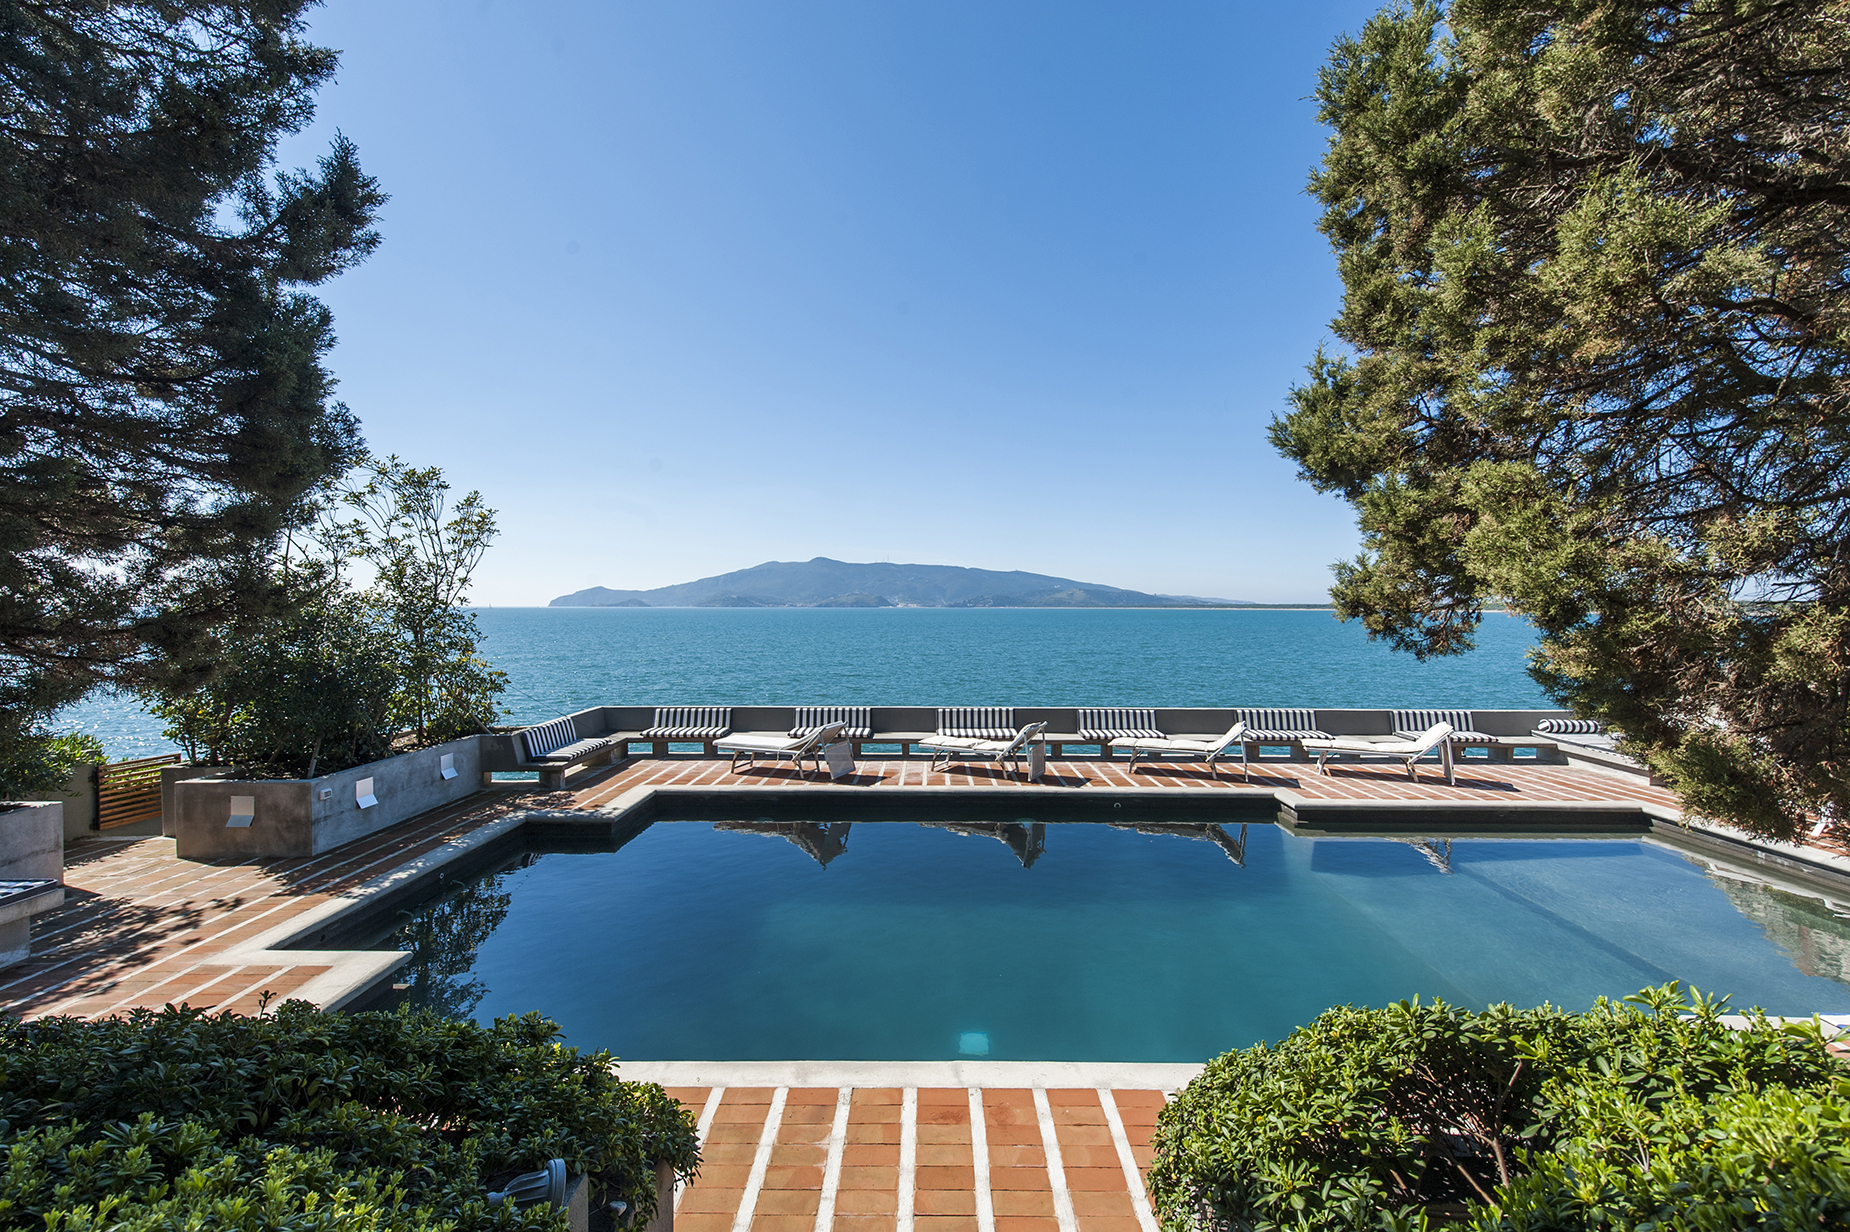 Additional photo for property listing at Magnificent Villa in Ansedonia overlooking the sea Ansedonia, Grosseto Italy